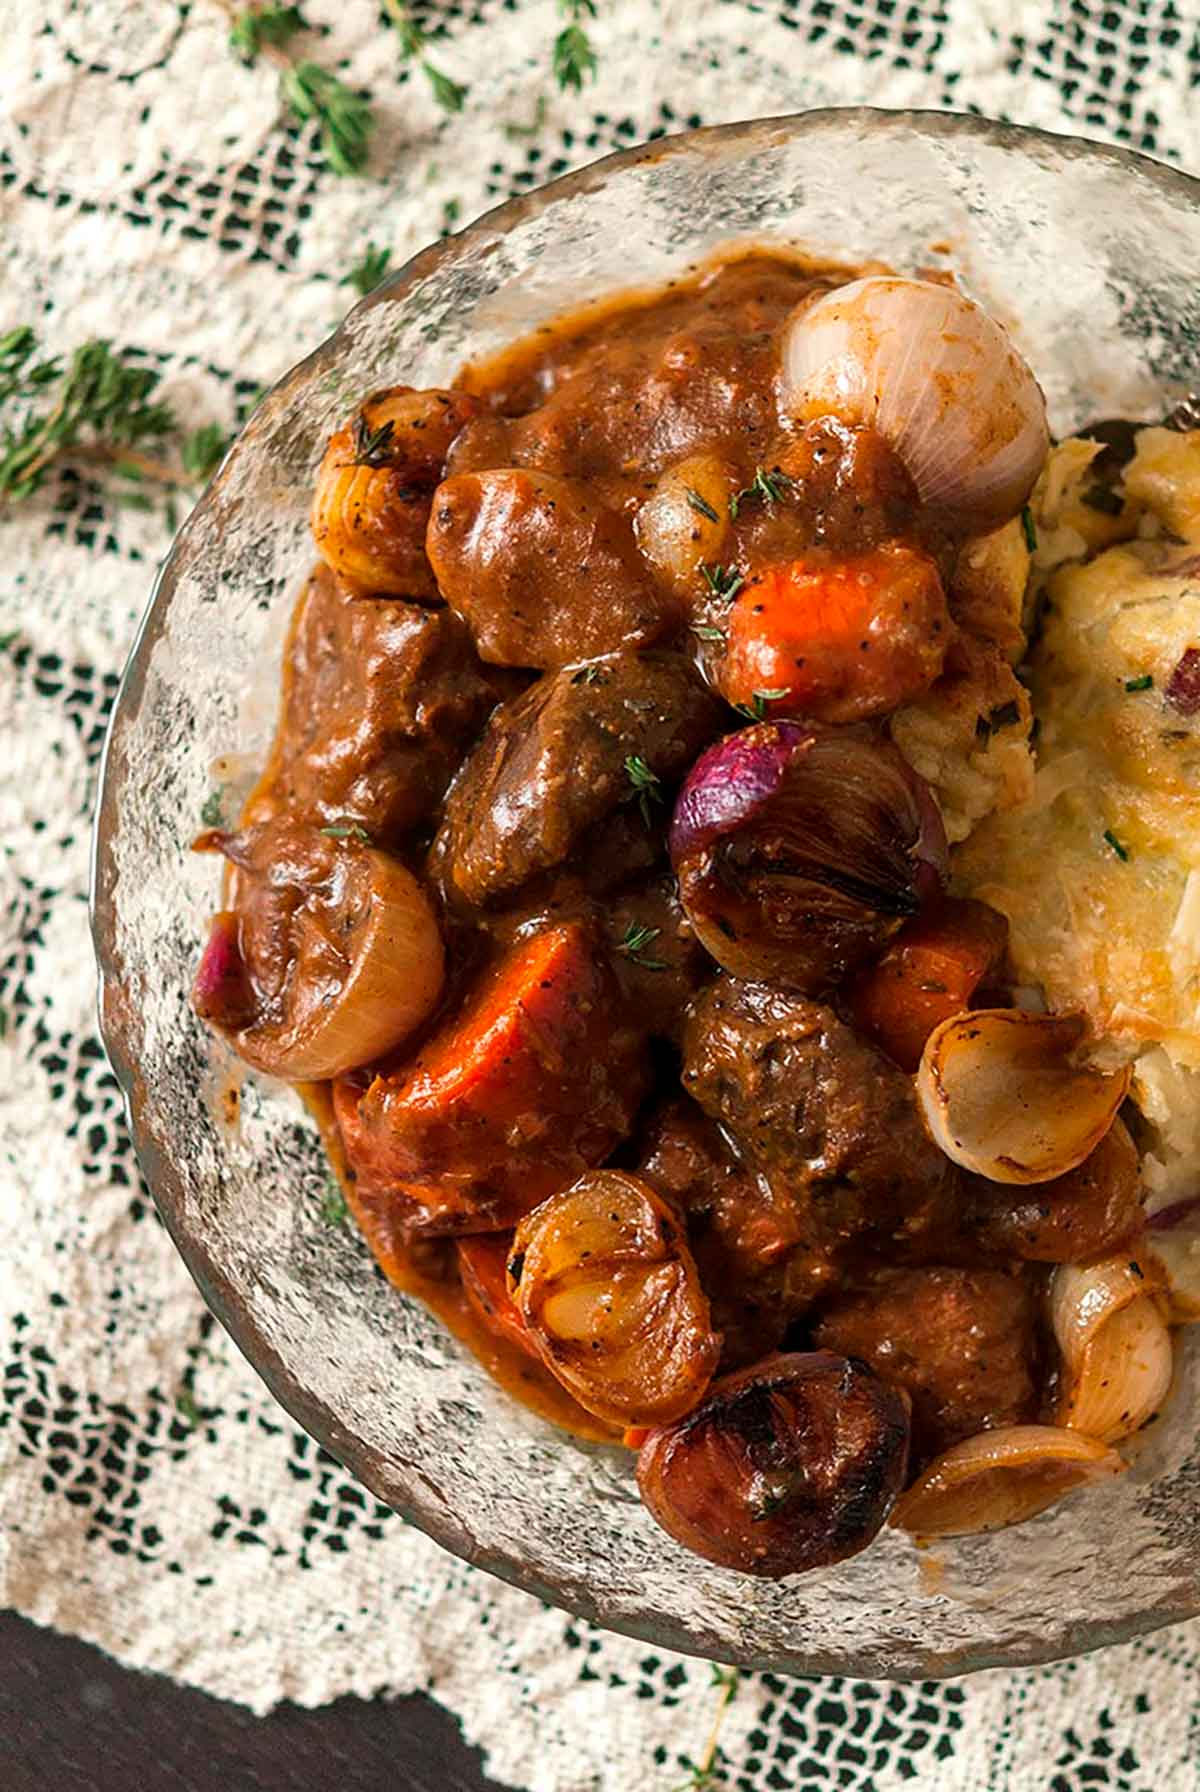 A bowl of beef bourguignon on a lace table cloth.